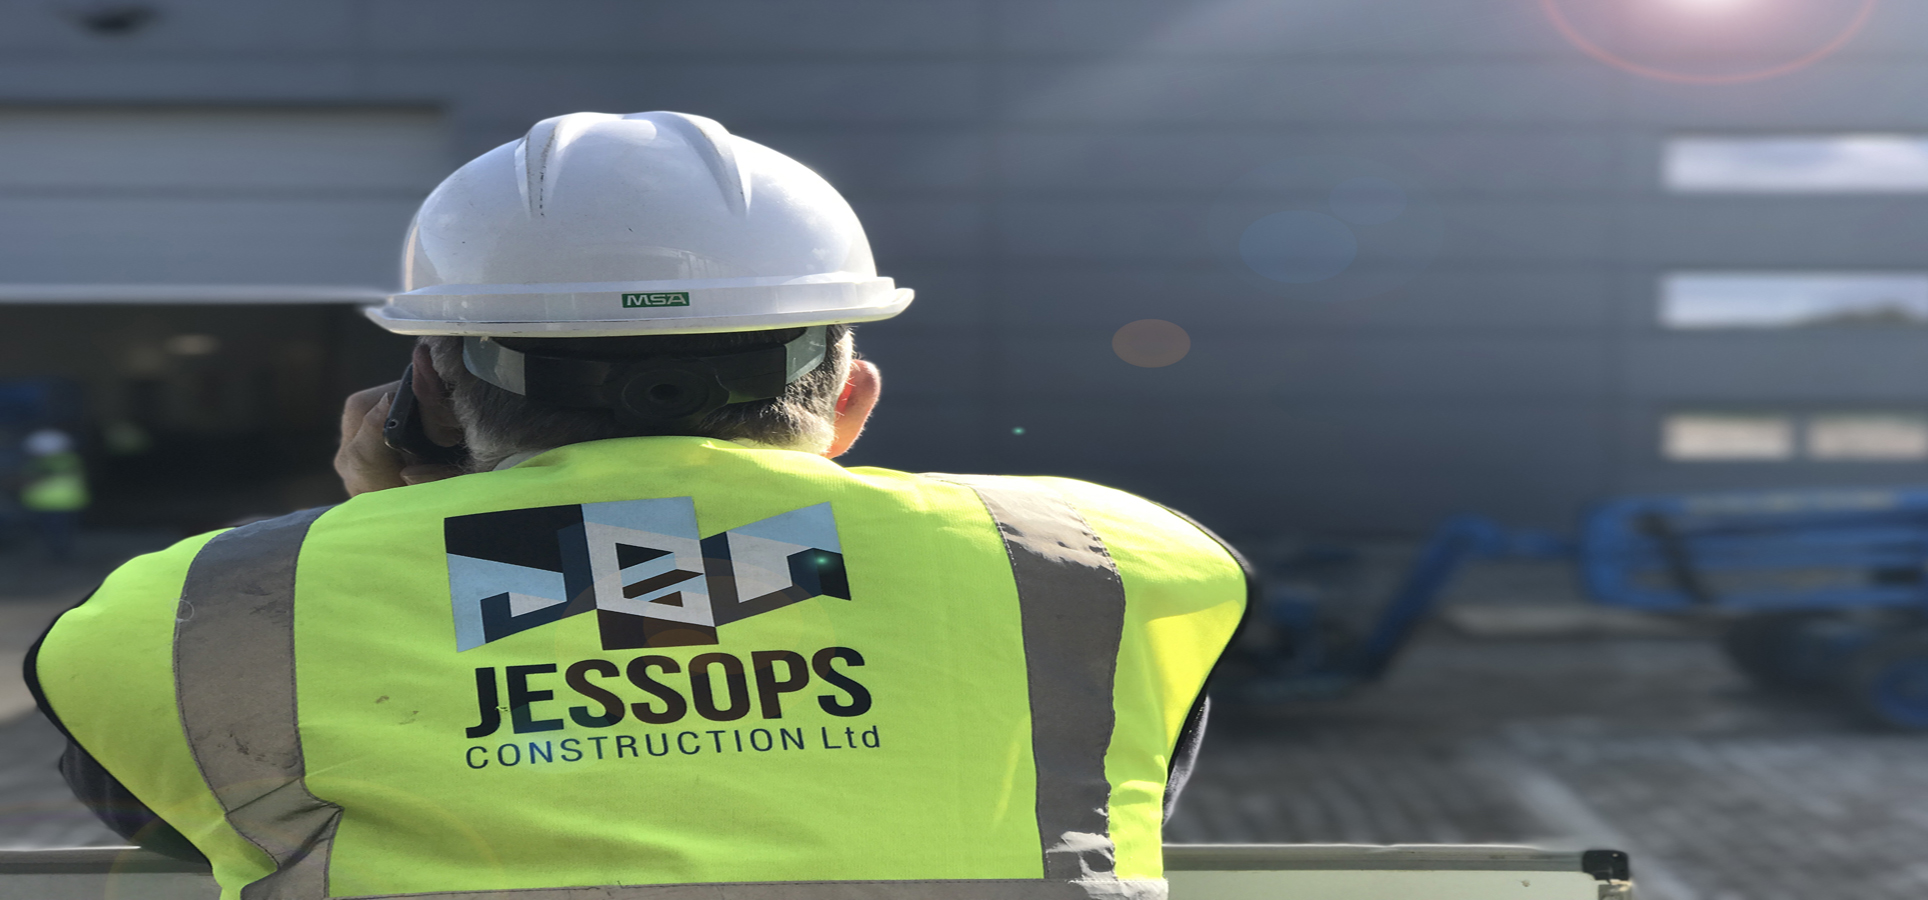 Jessops Construction Launches '12 Days of Community' Campaign, Jessops Construction Ltd